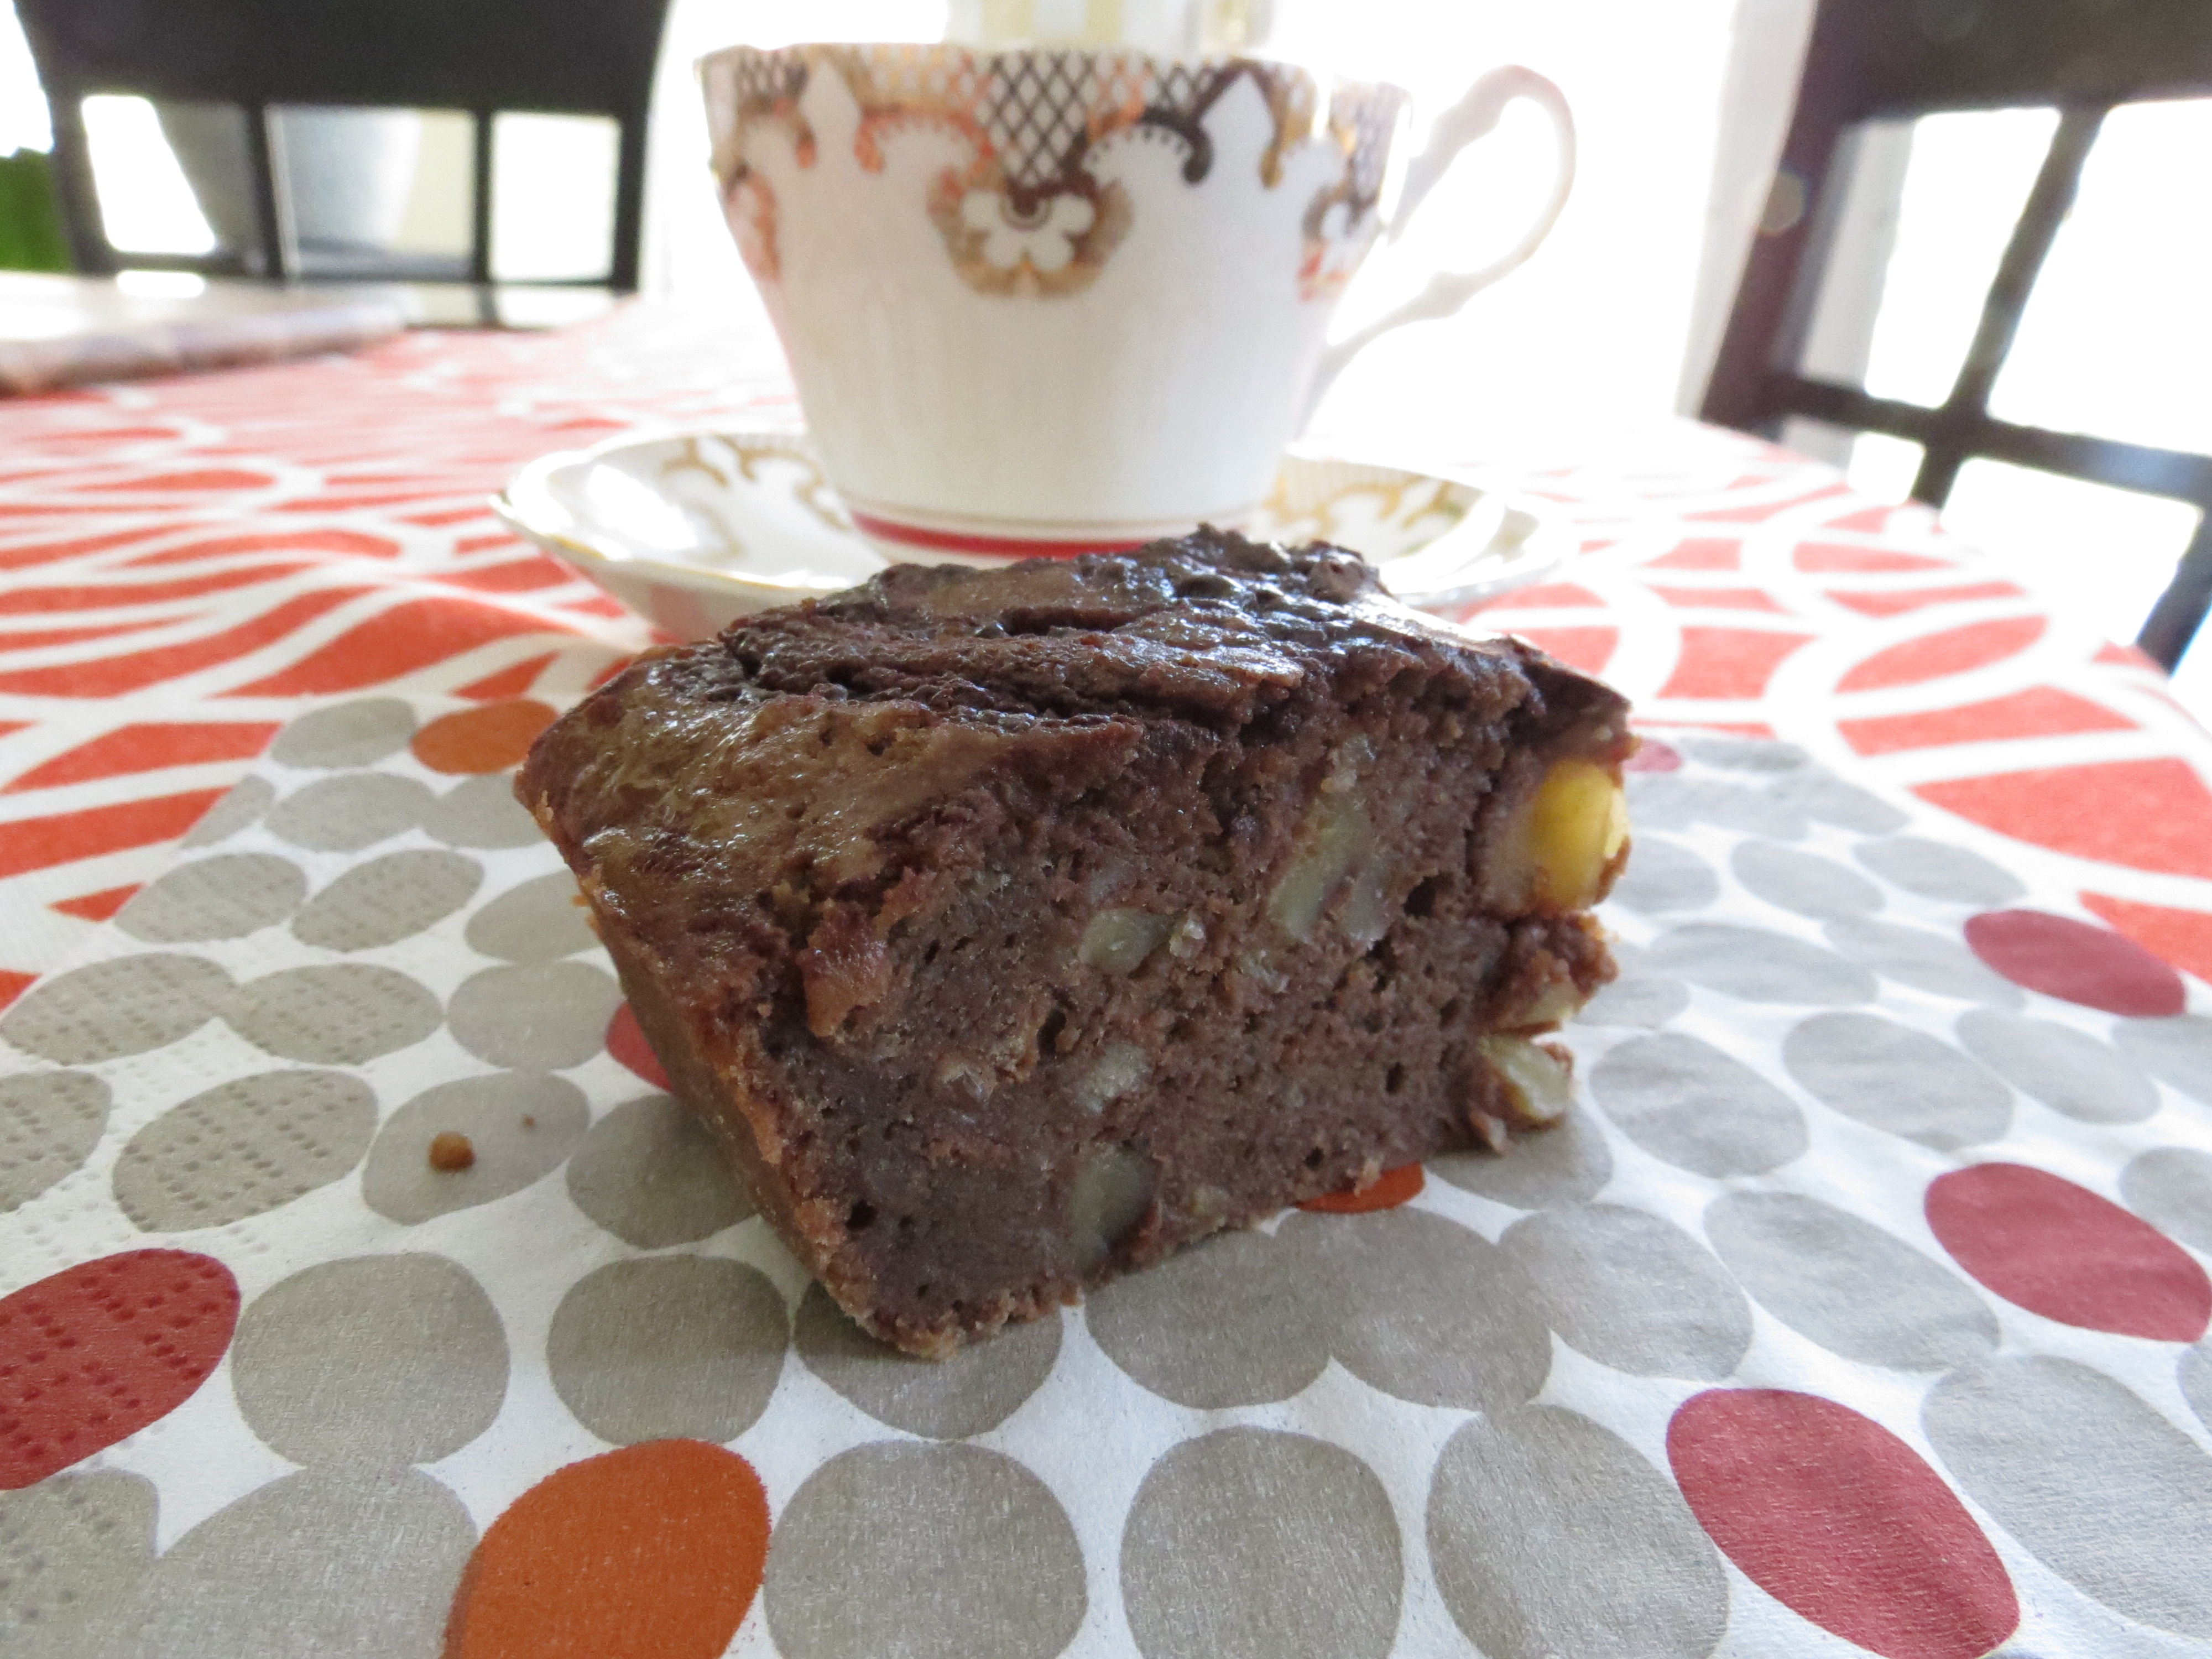 Banana Bread Brownies from the Fat Witch Bakery